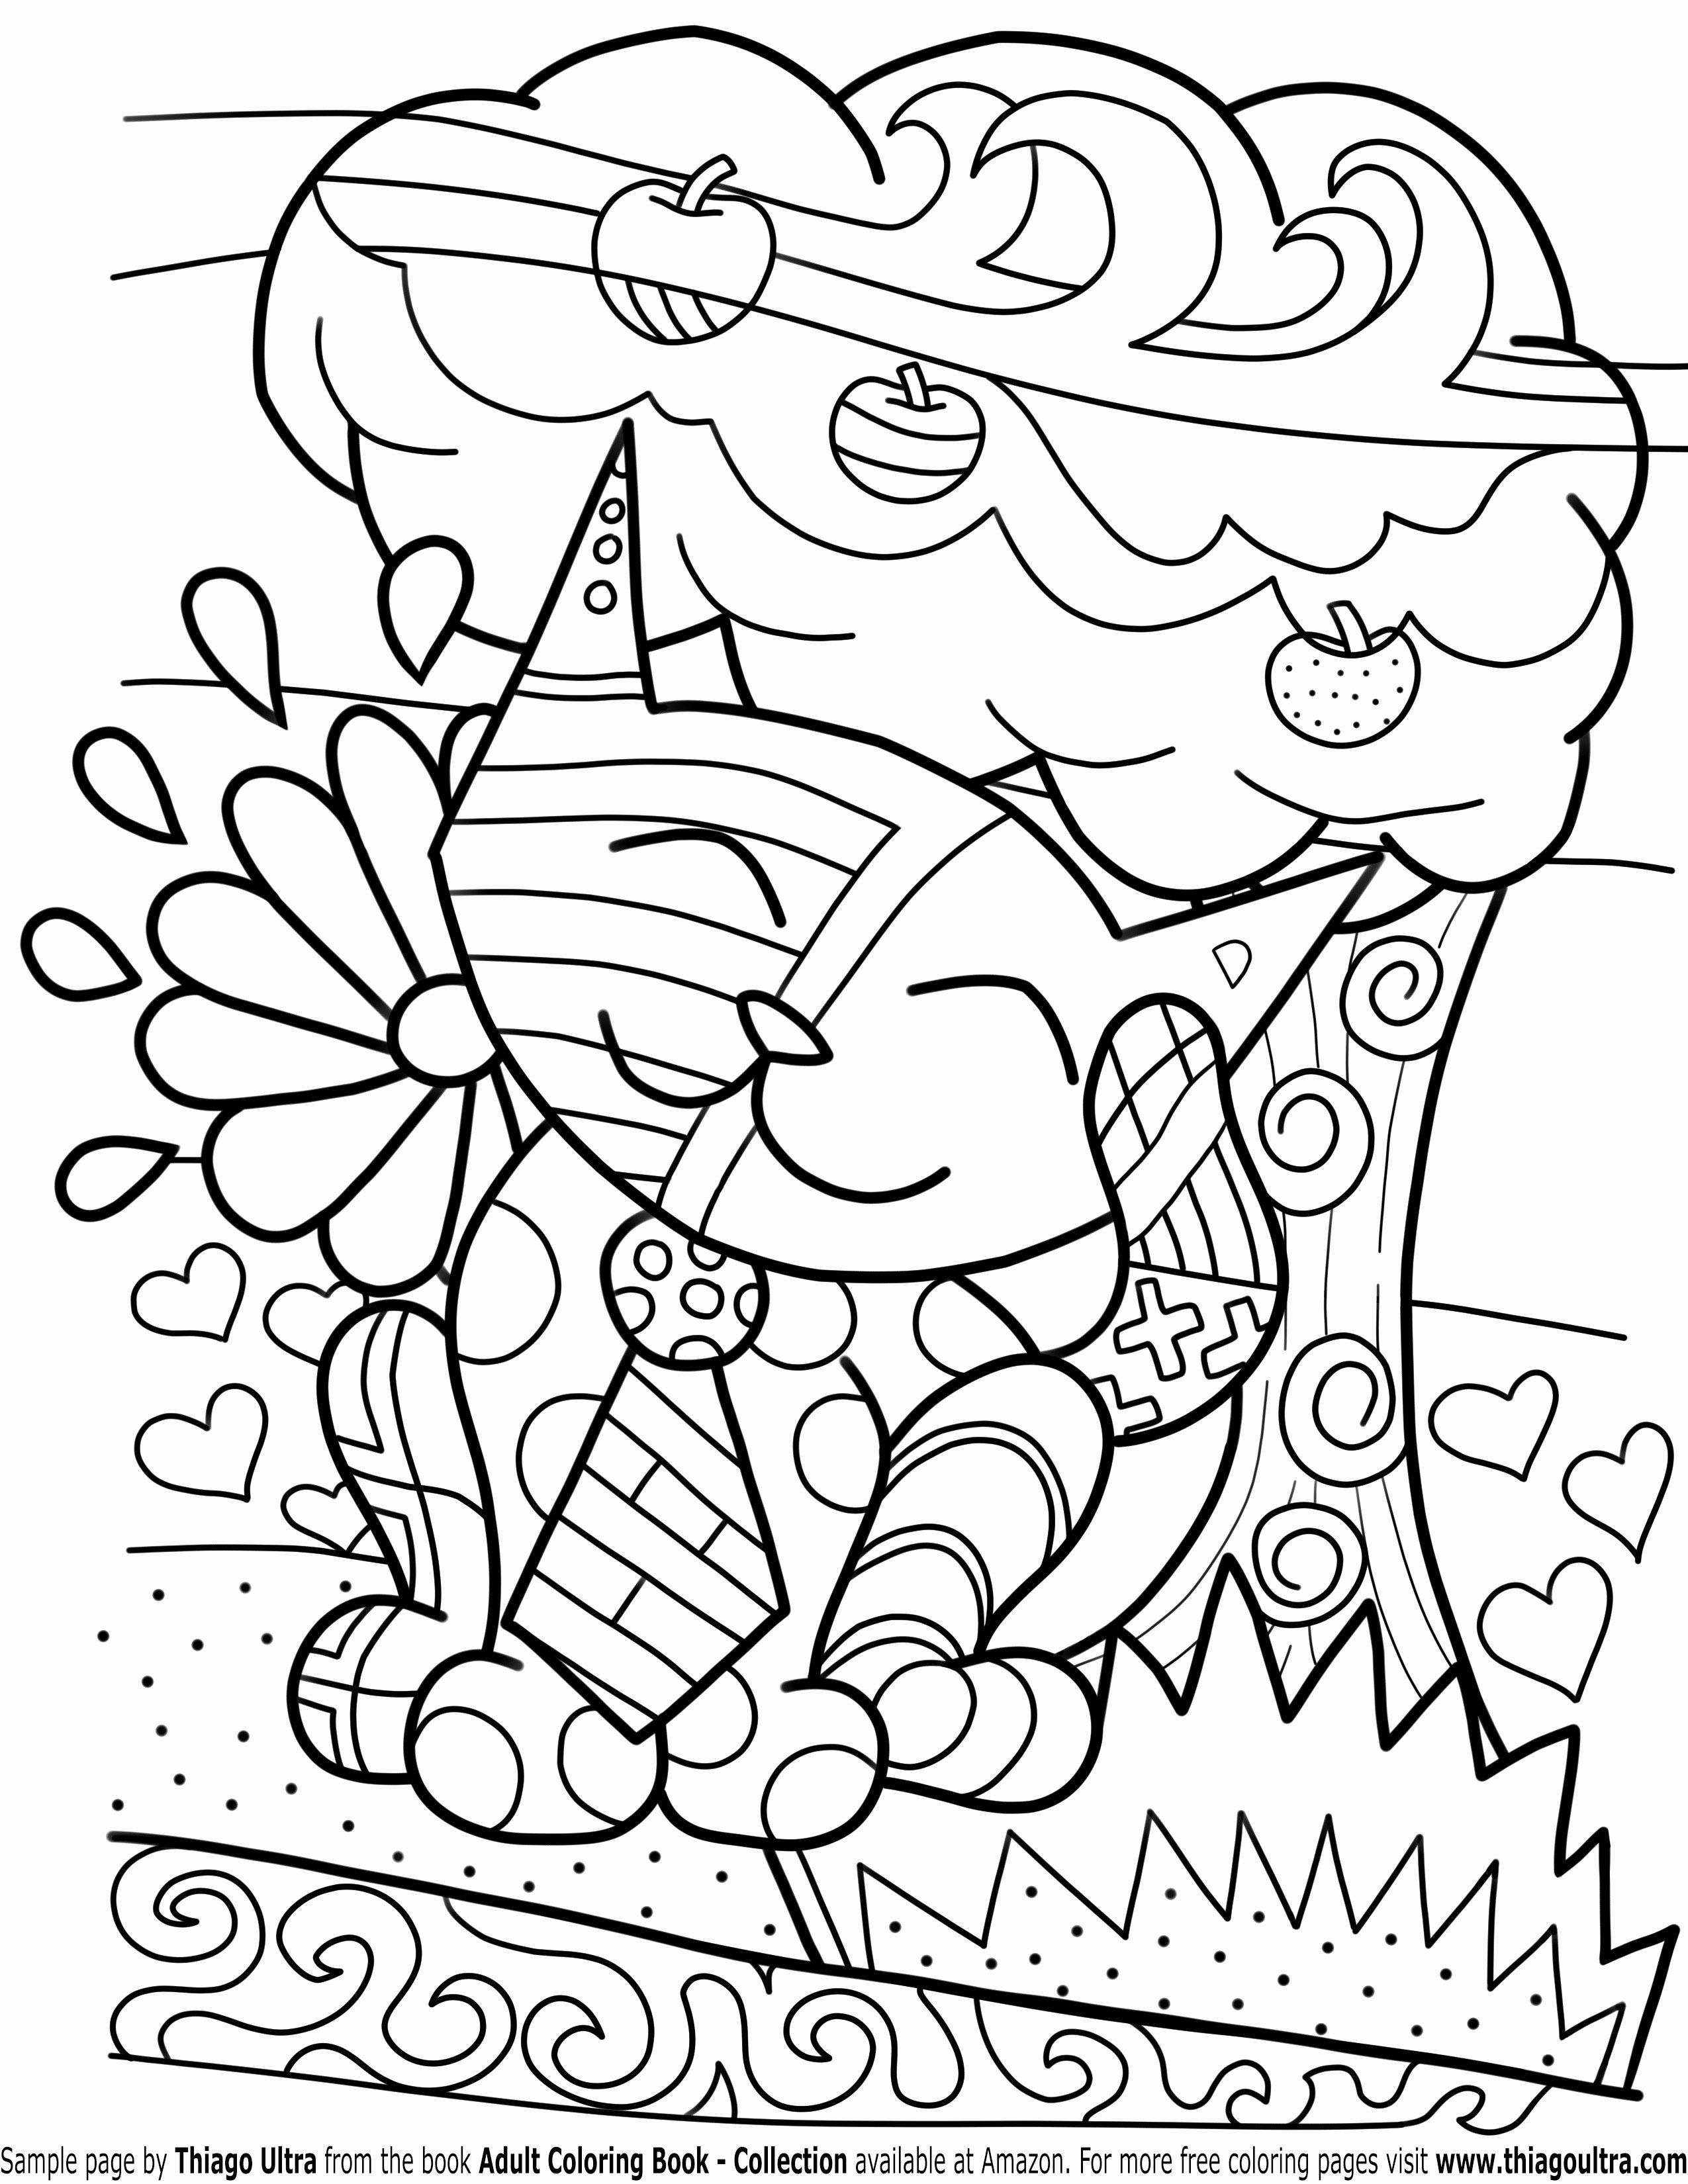 Anatomy Coloring Book Pages Best Of Coloring Book Boughton